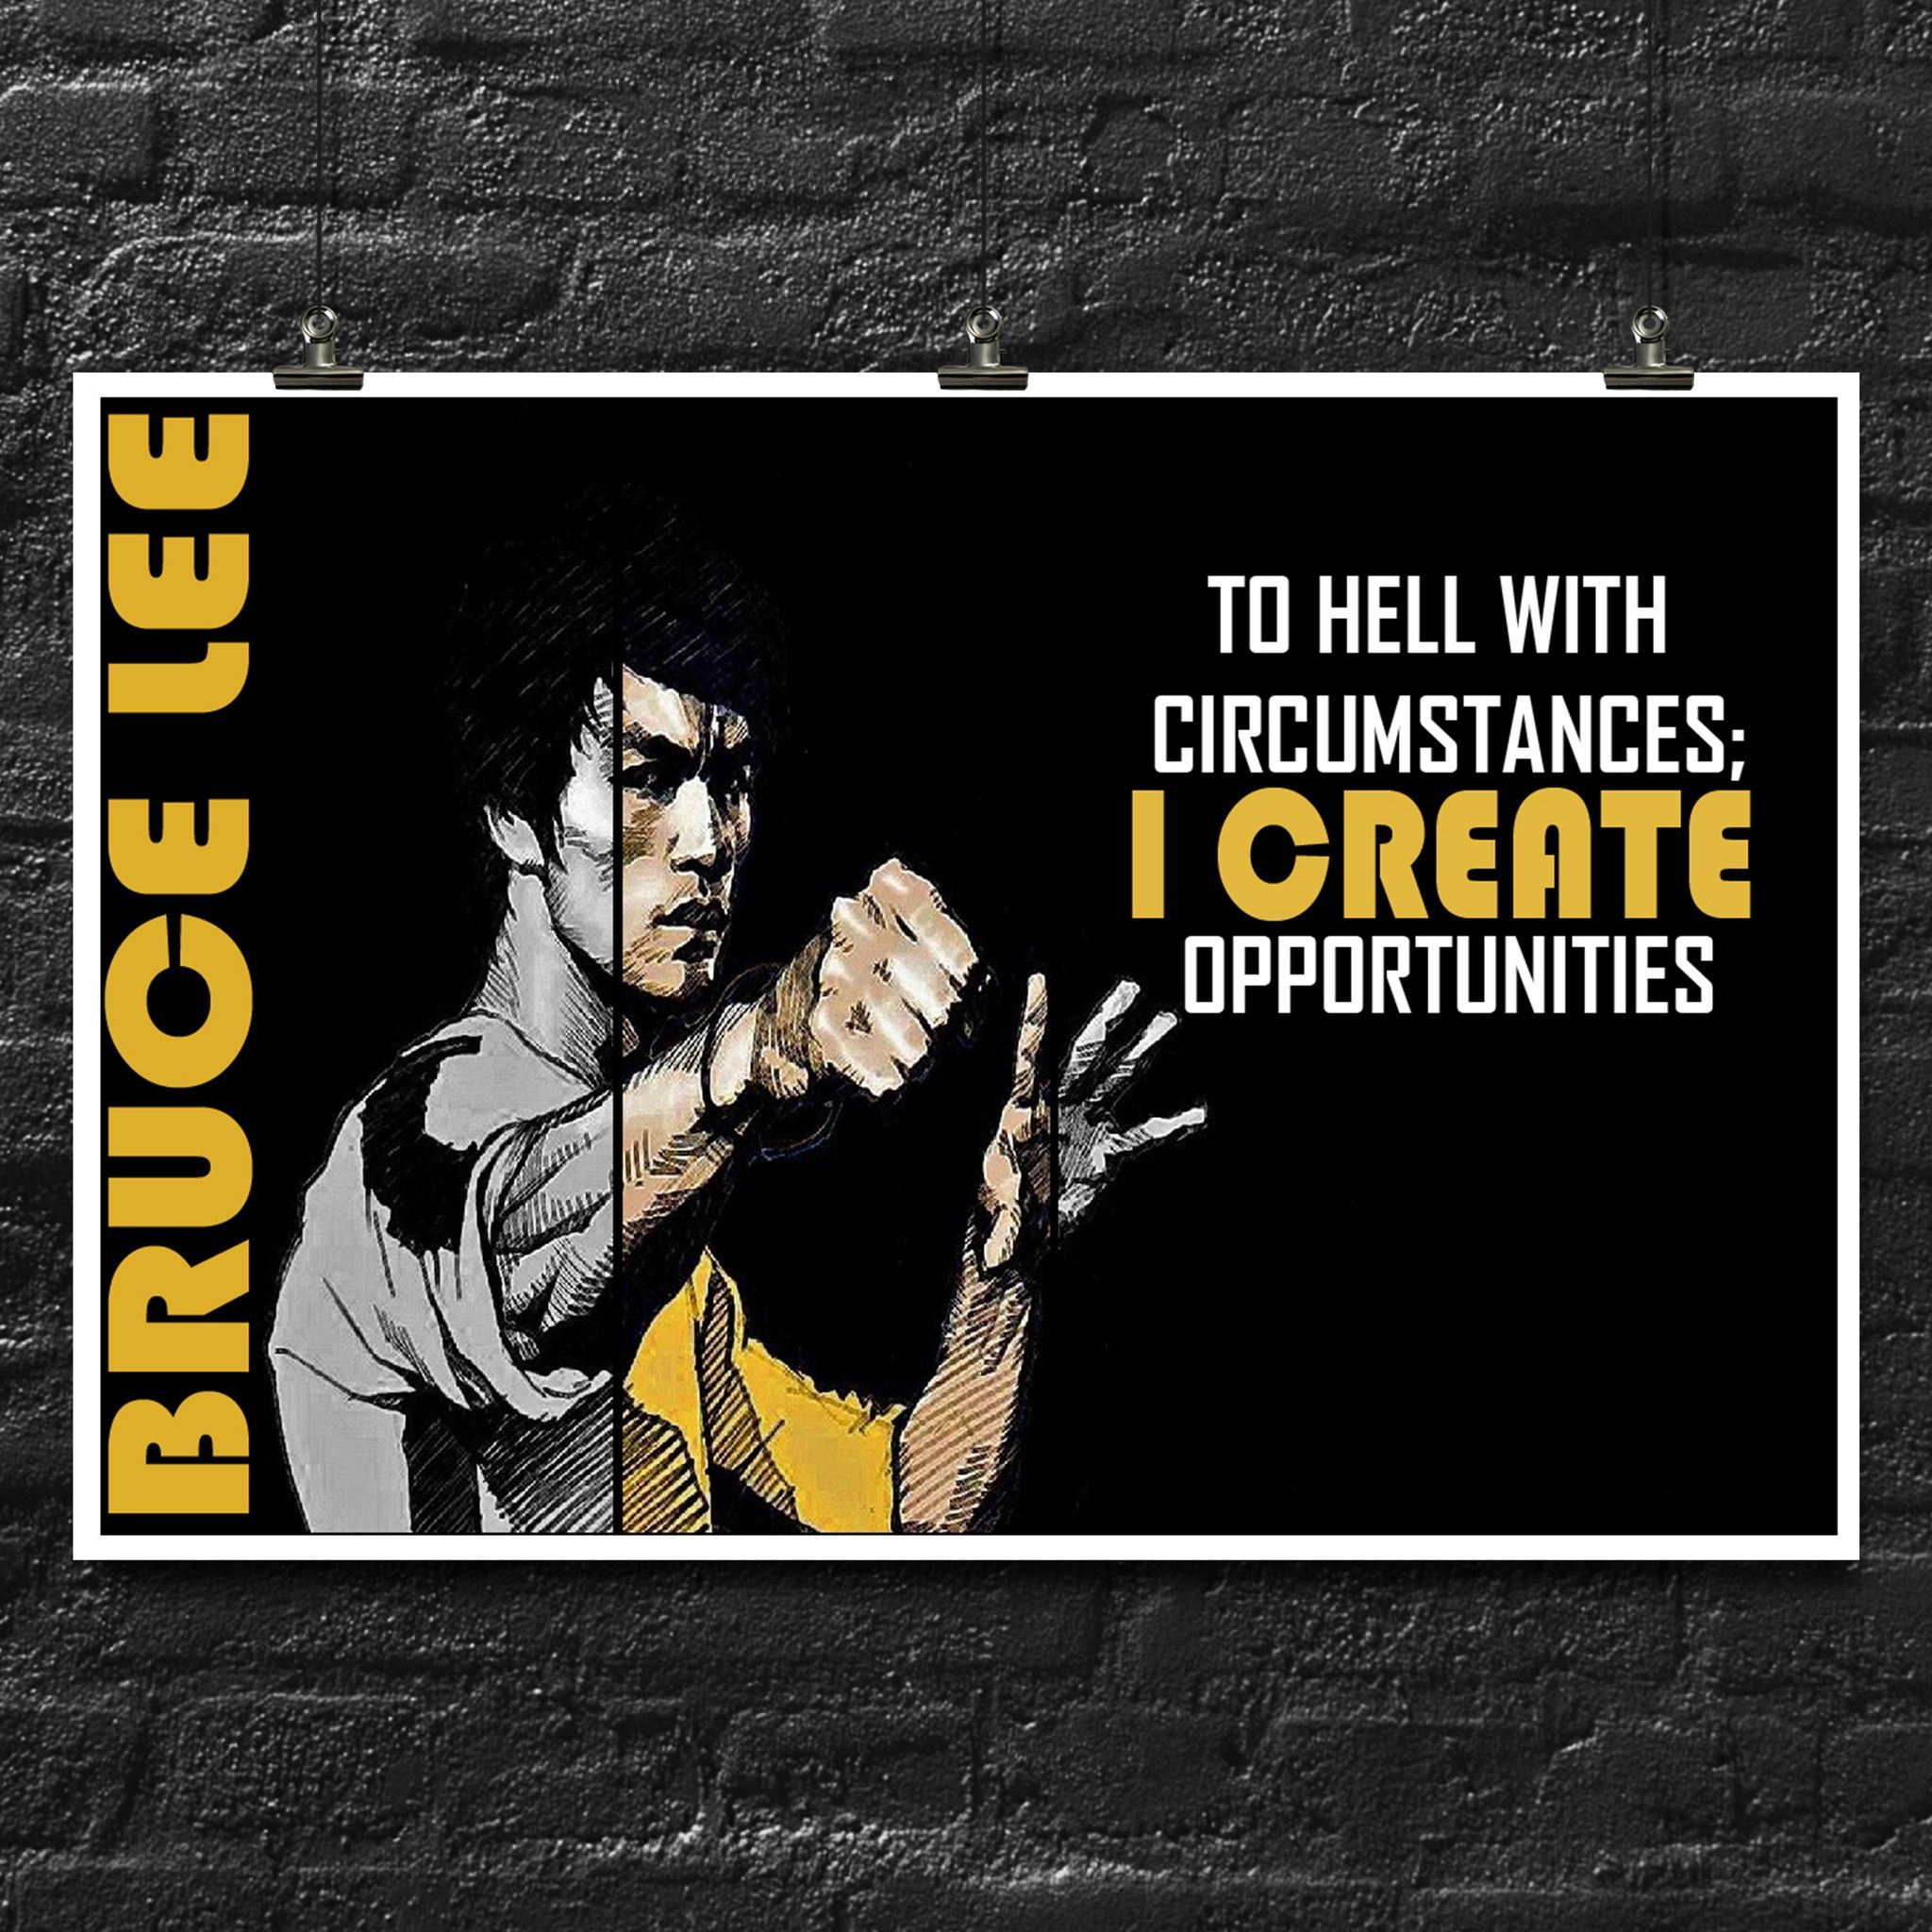 Bruce Lee Quote I Create Opportunites Motivational Poster Wall Decor Bruce Lee Quotes Motivational Posters Bruce Lee